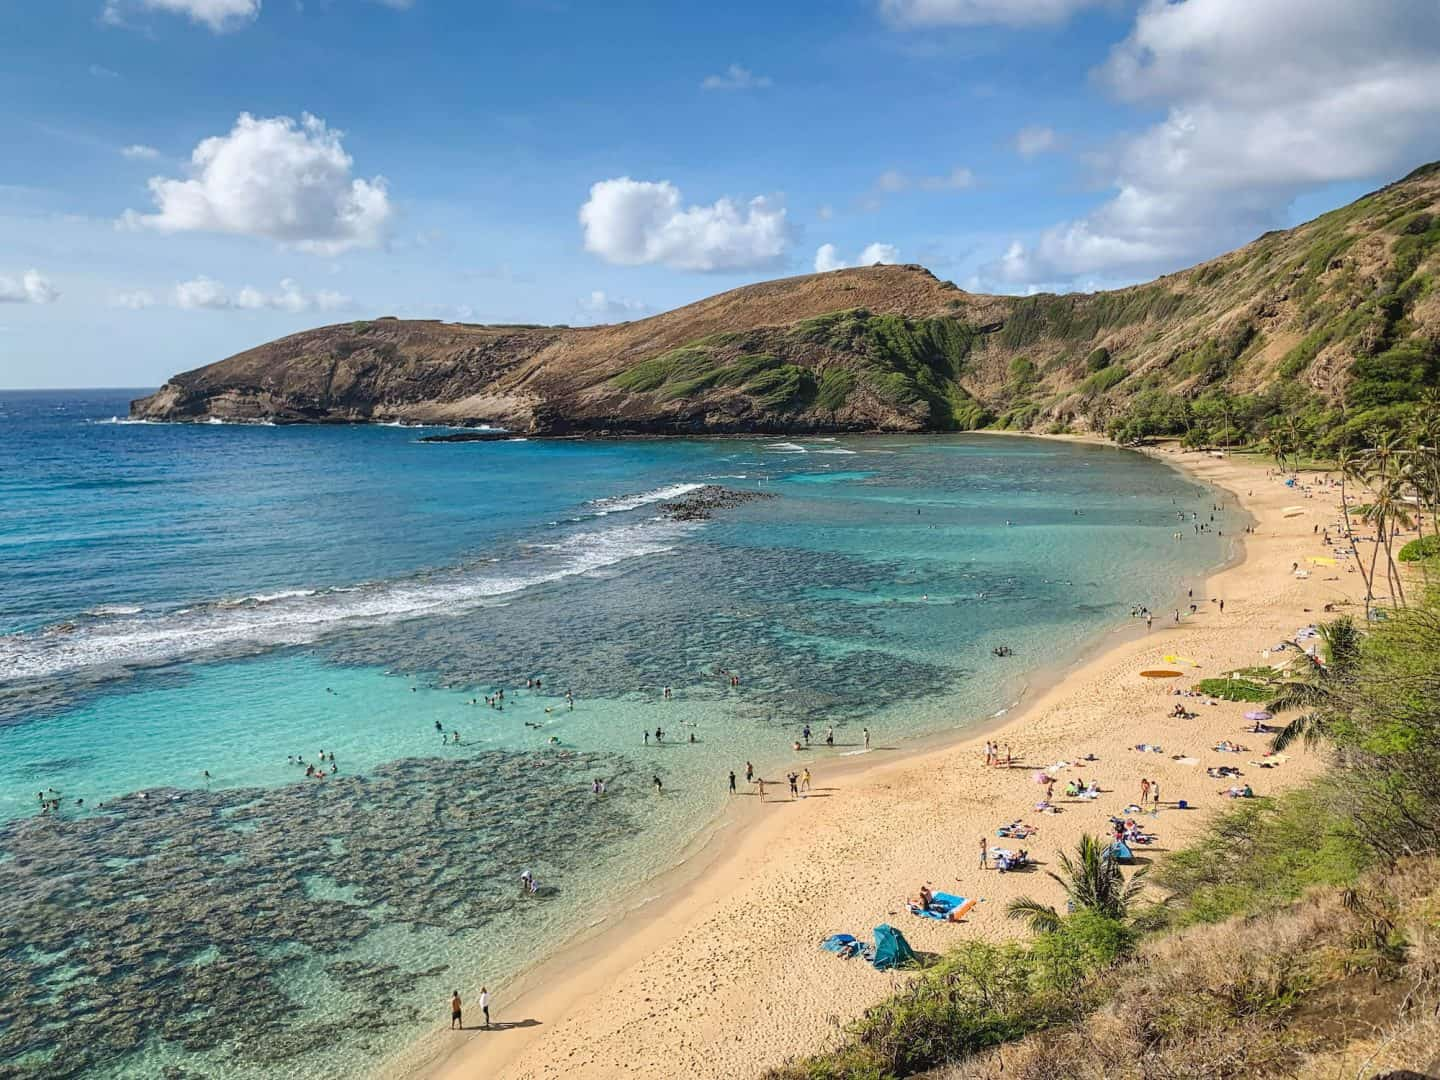 As the best place to snorkel on the island, Hanauma Bay is worth adding to your Oahu itinerary